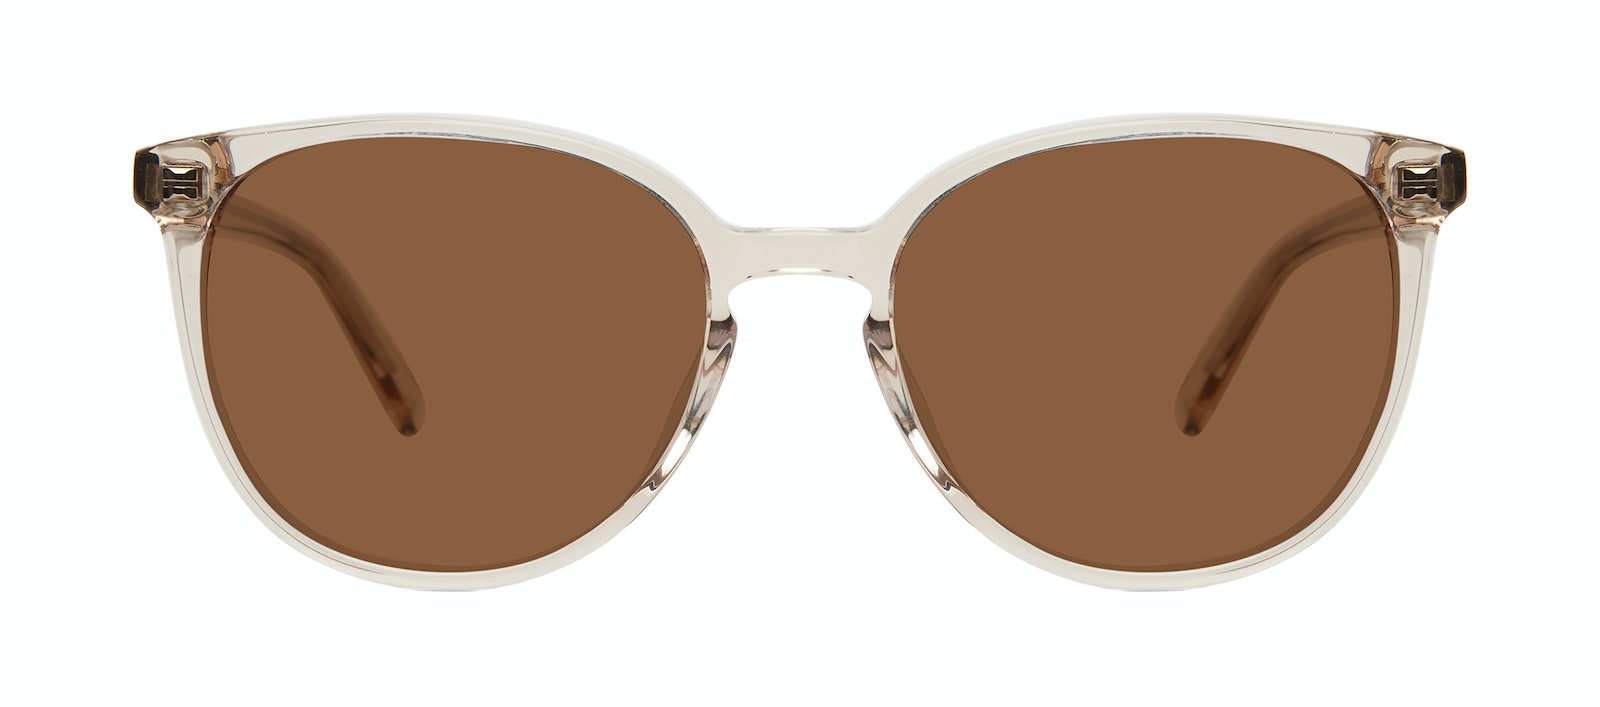 Affordable Fashion Glasses Round Sunglasses Women Impression Blond Front